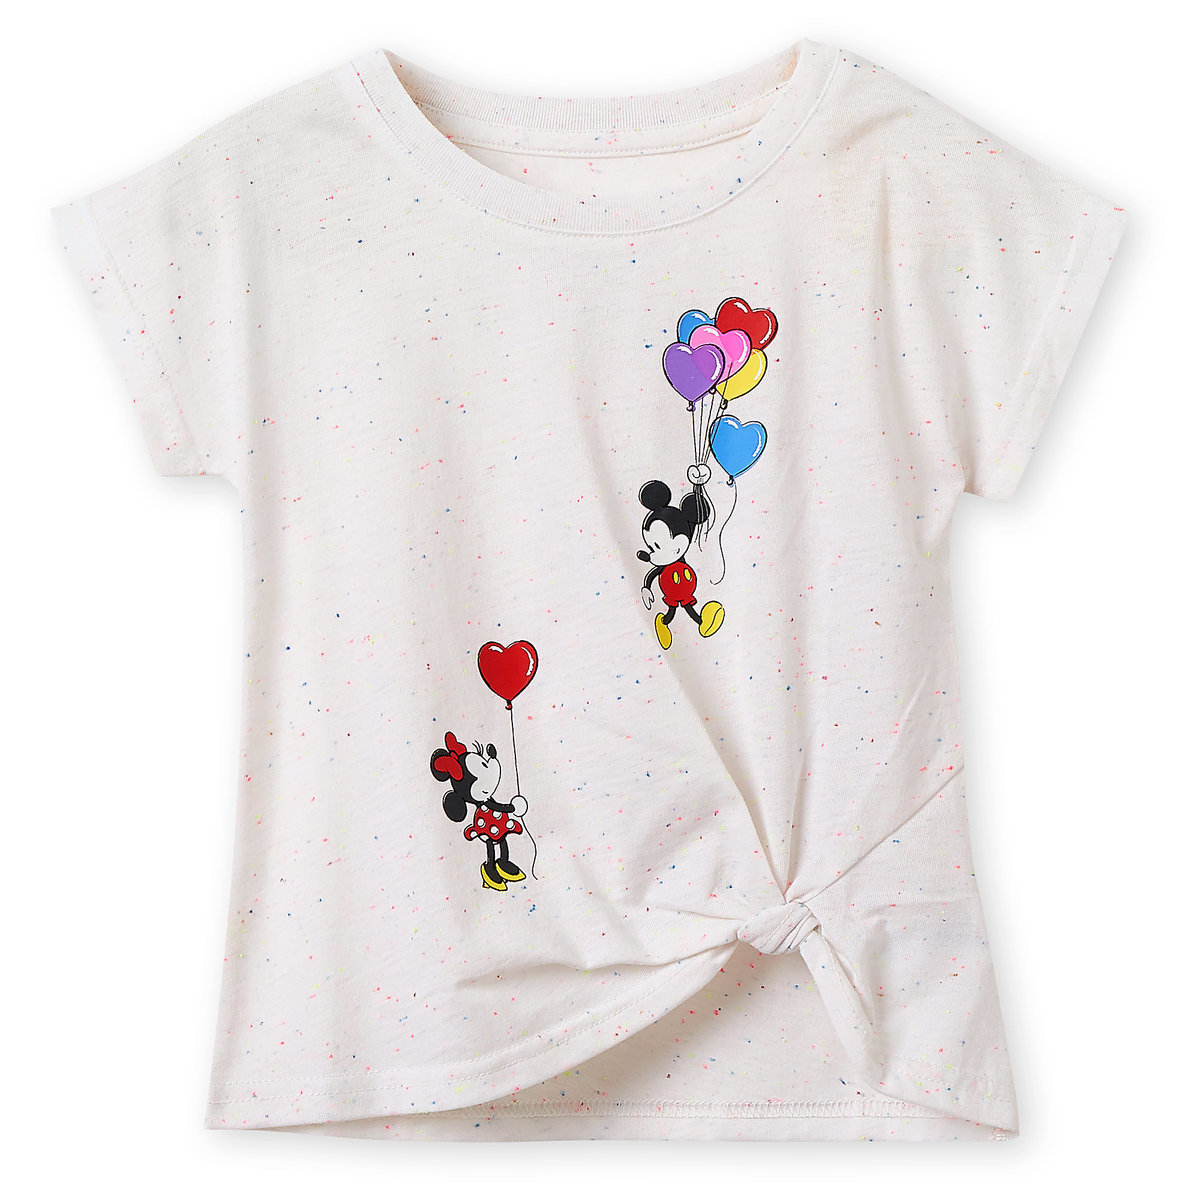 d95d0afe Product Image of Mickey and Minnie Mouse Balloons T-Shirt for Girls # 1